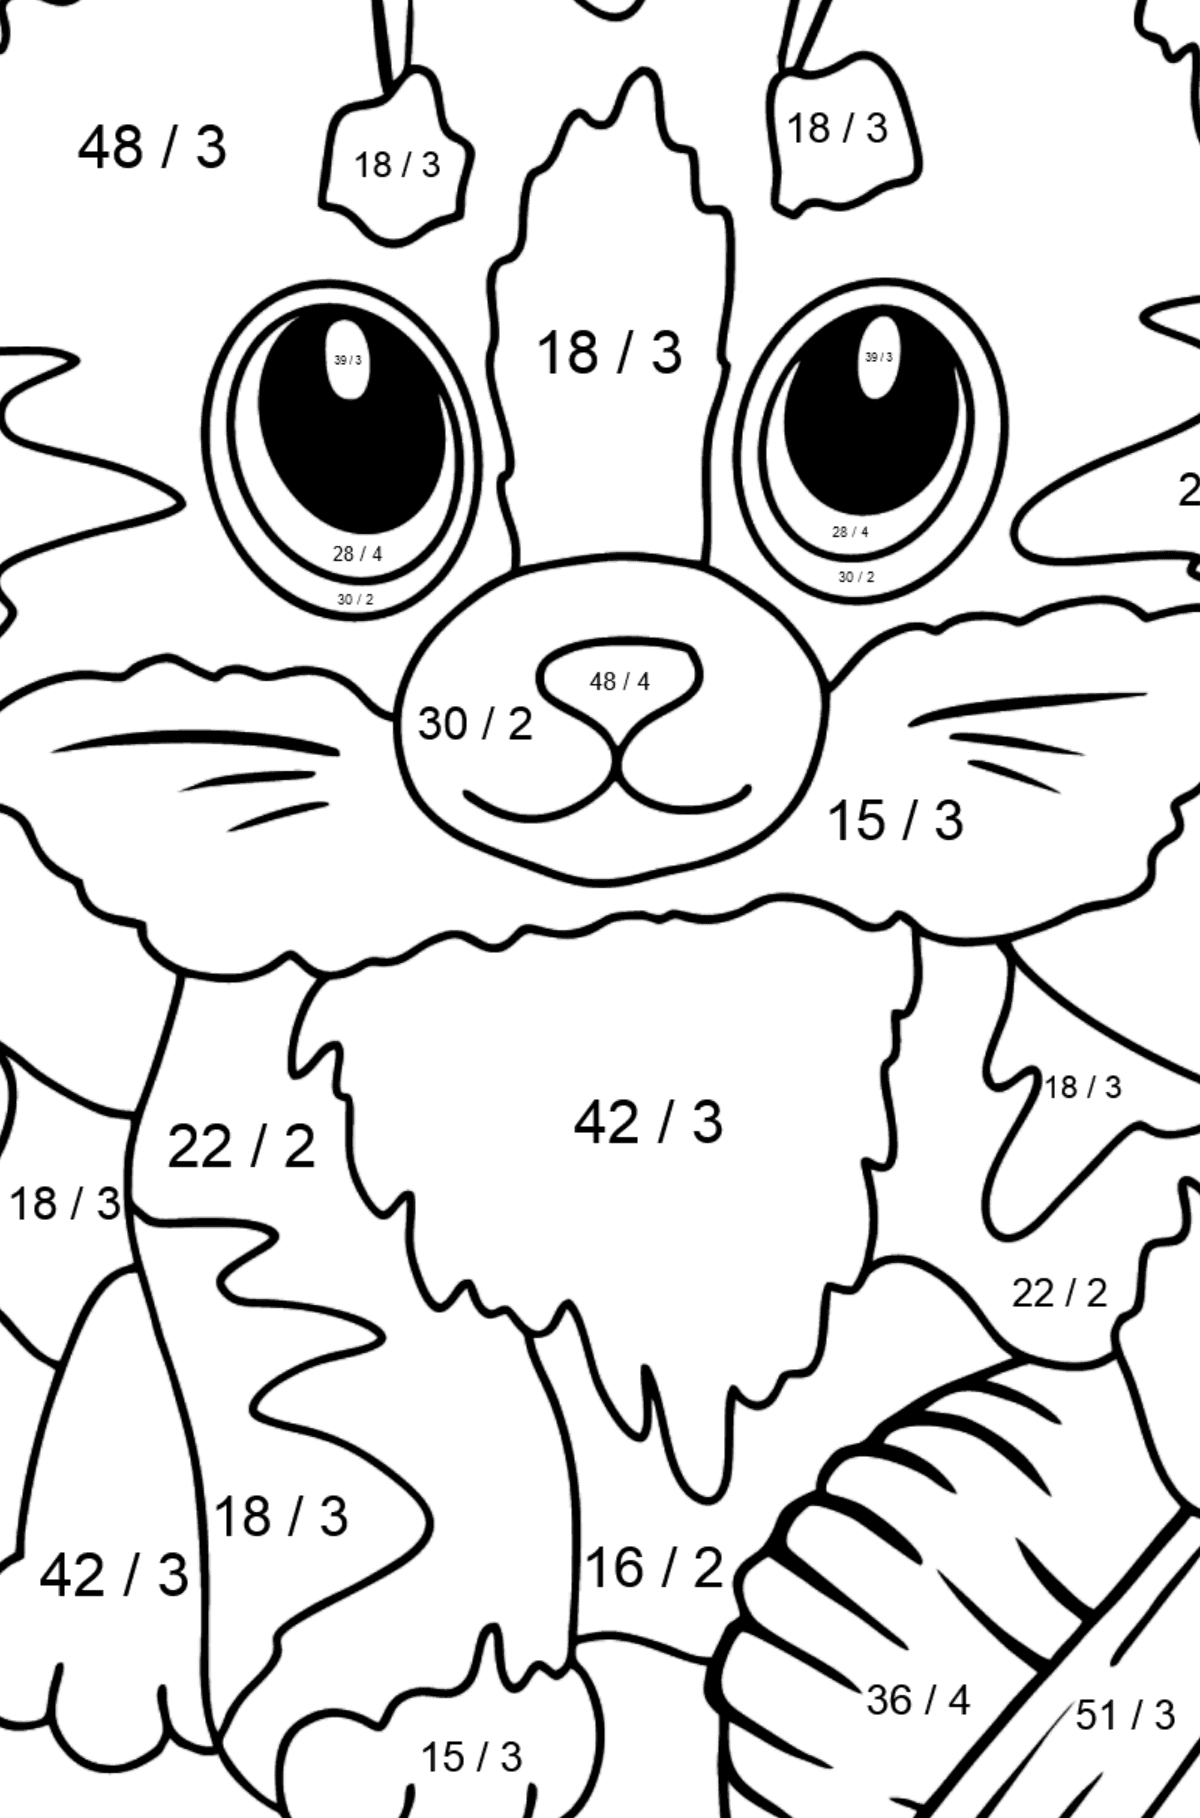 Cute Cat Coloring Page - Math Coloring - Division for Kids